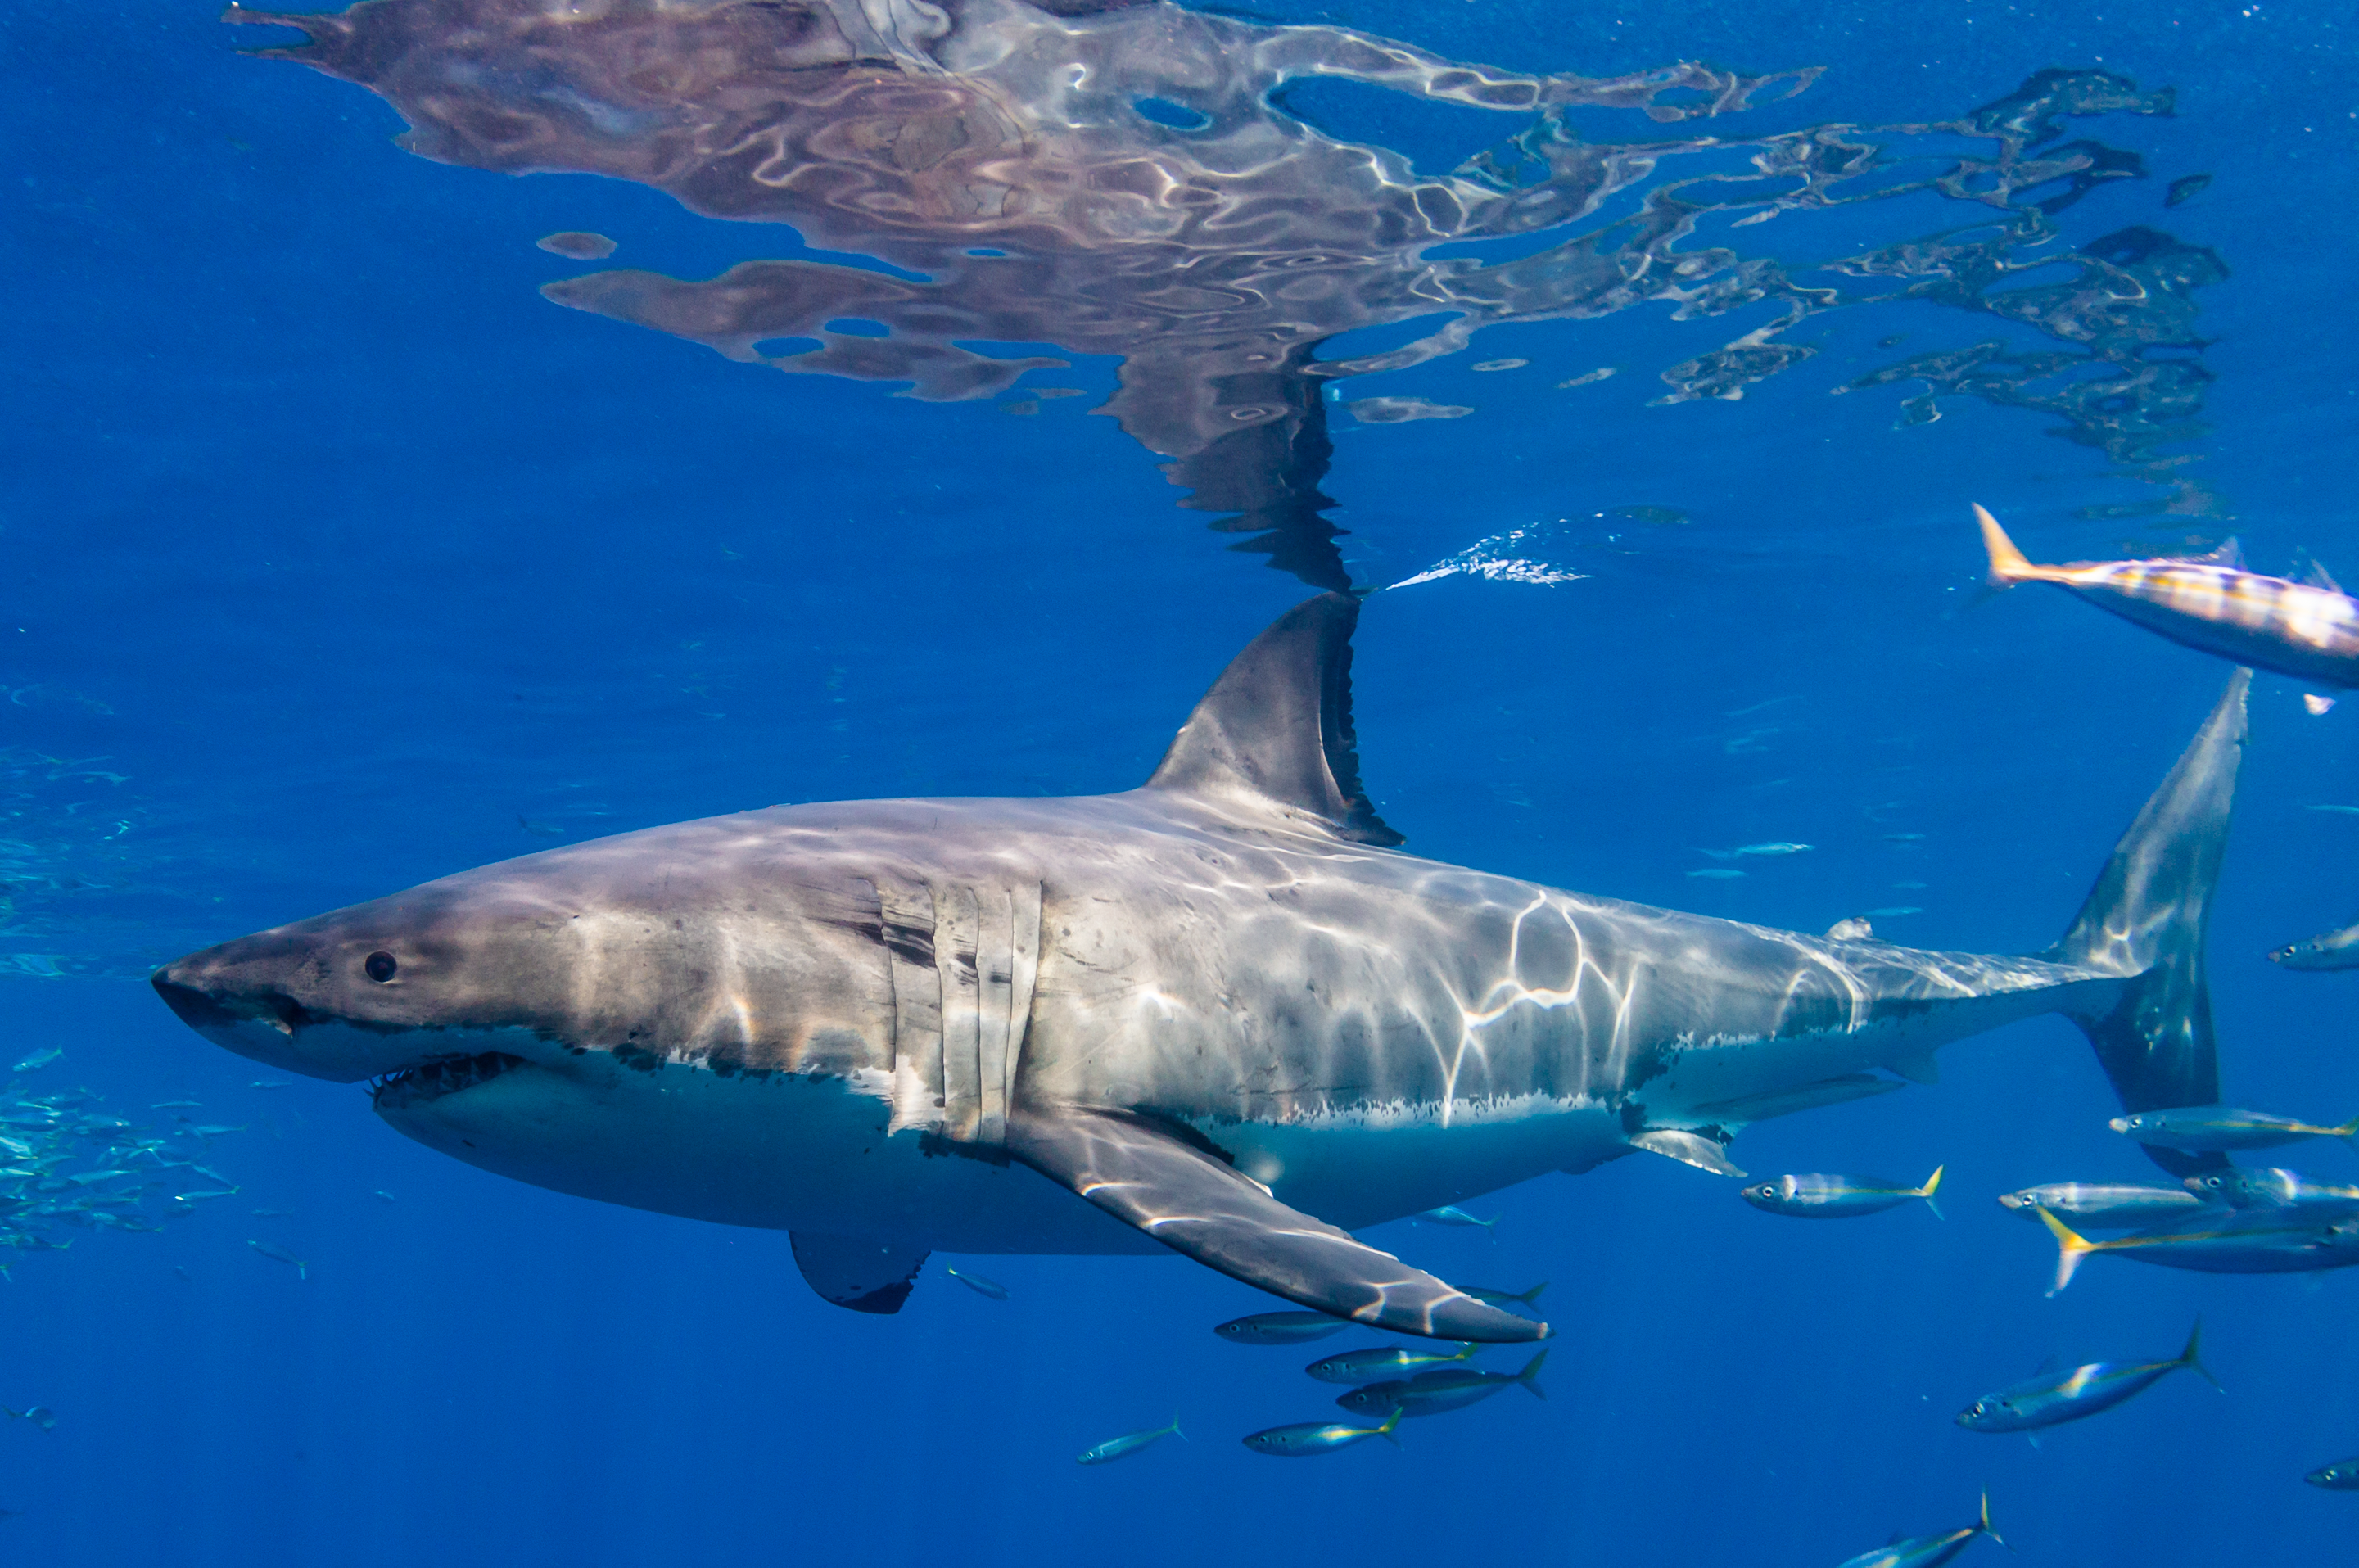 Profile of a crazy awesome great white shark